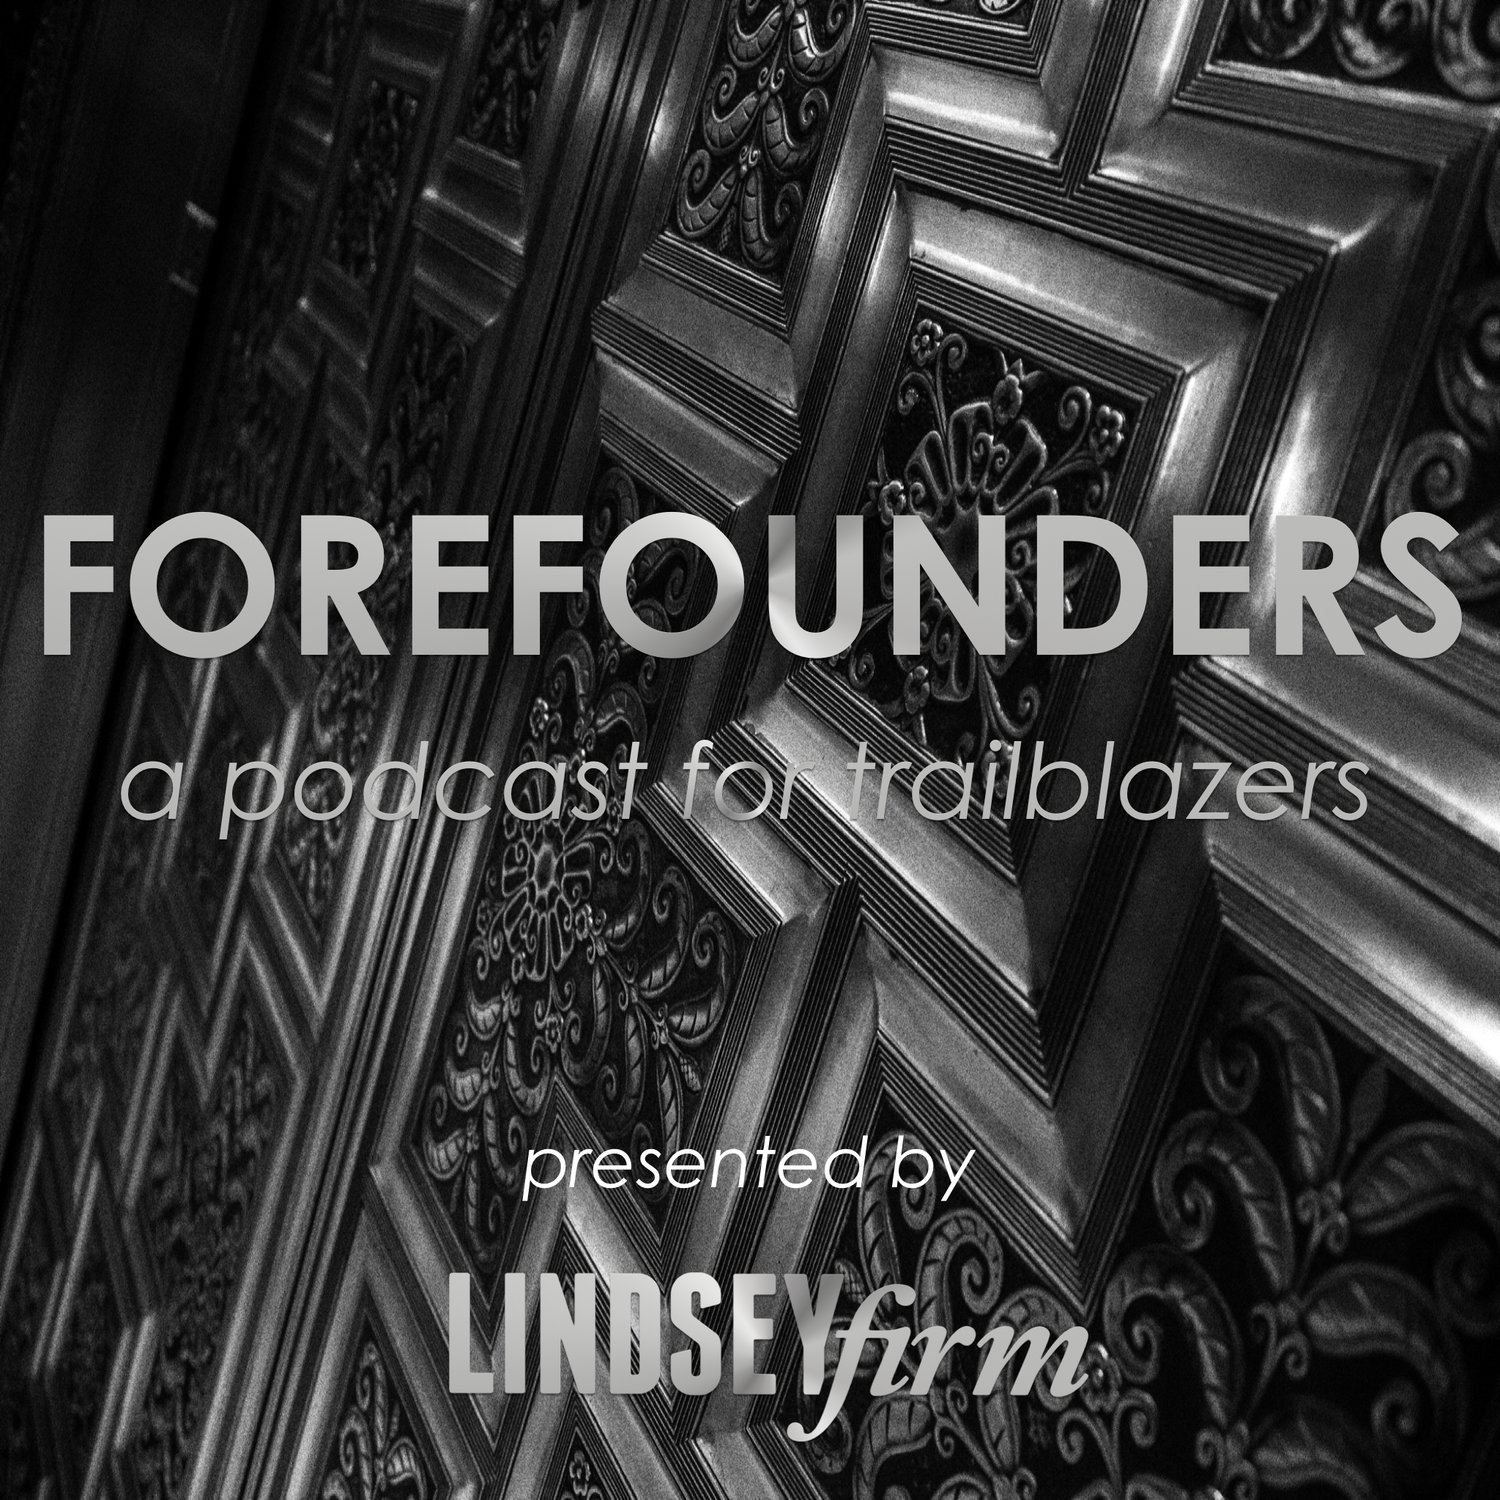 FOREFOUNDERS - LINDSEYfirm | Tulsa Business Law Firm